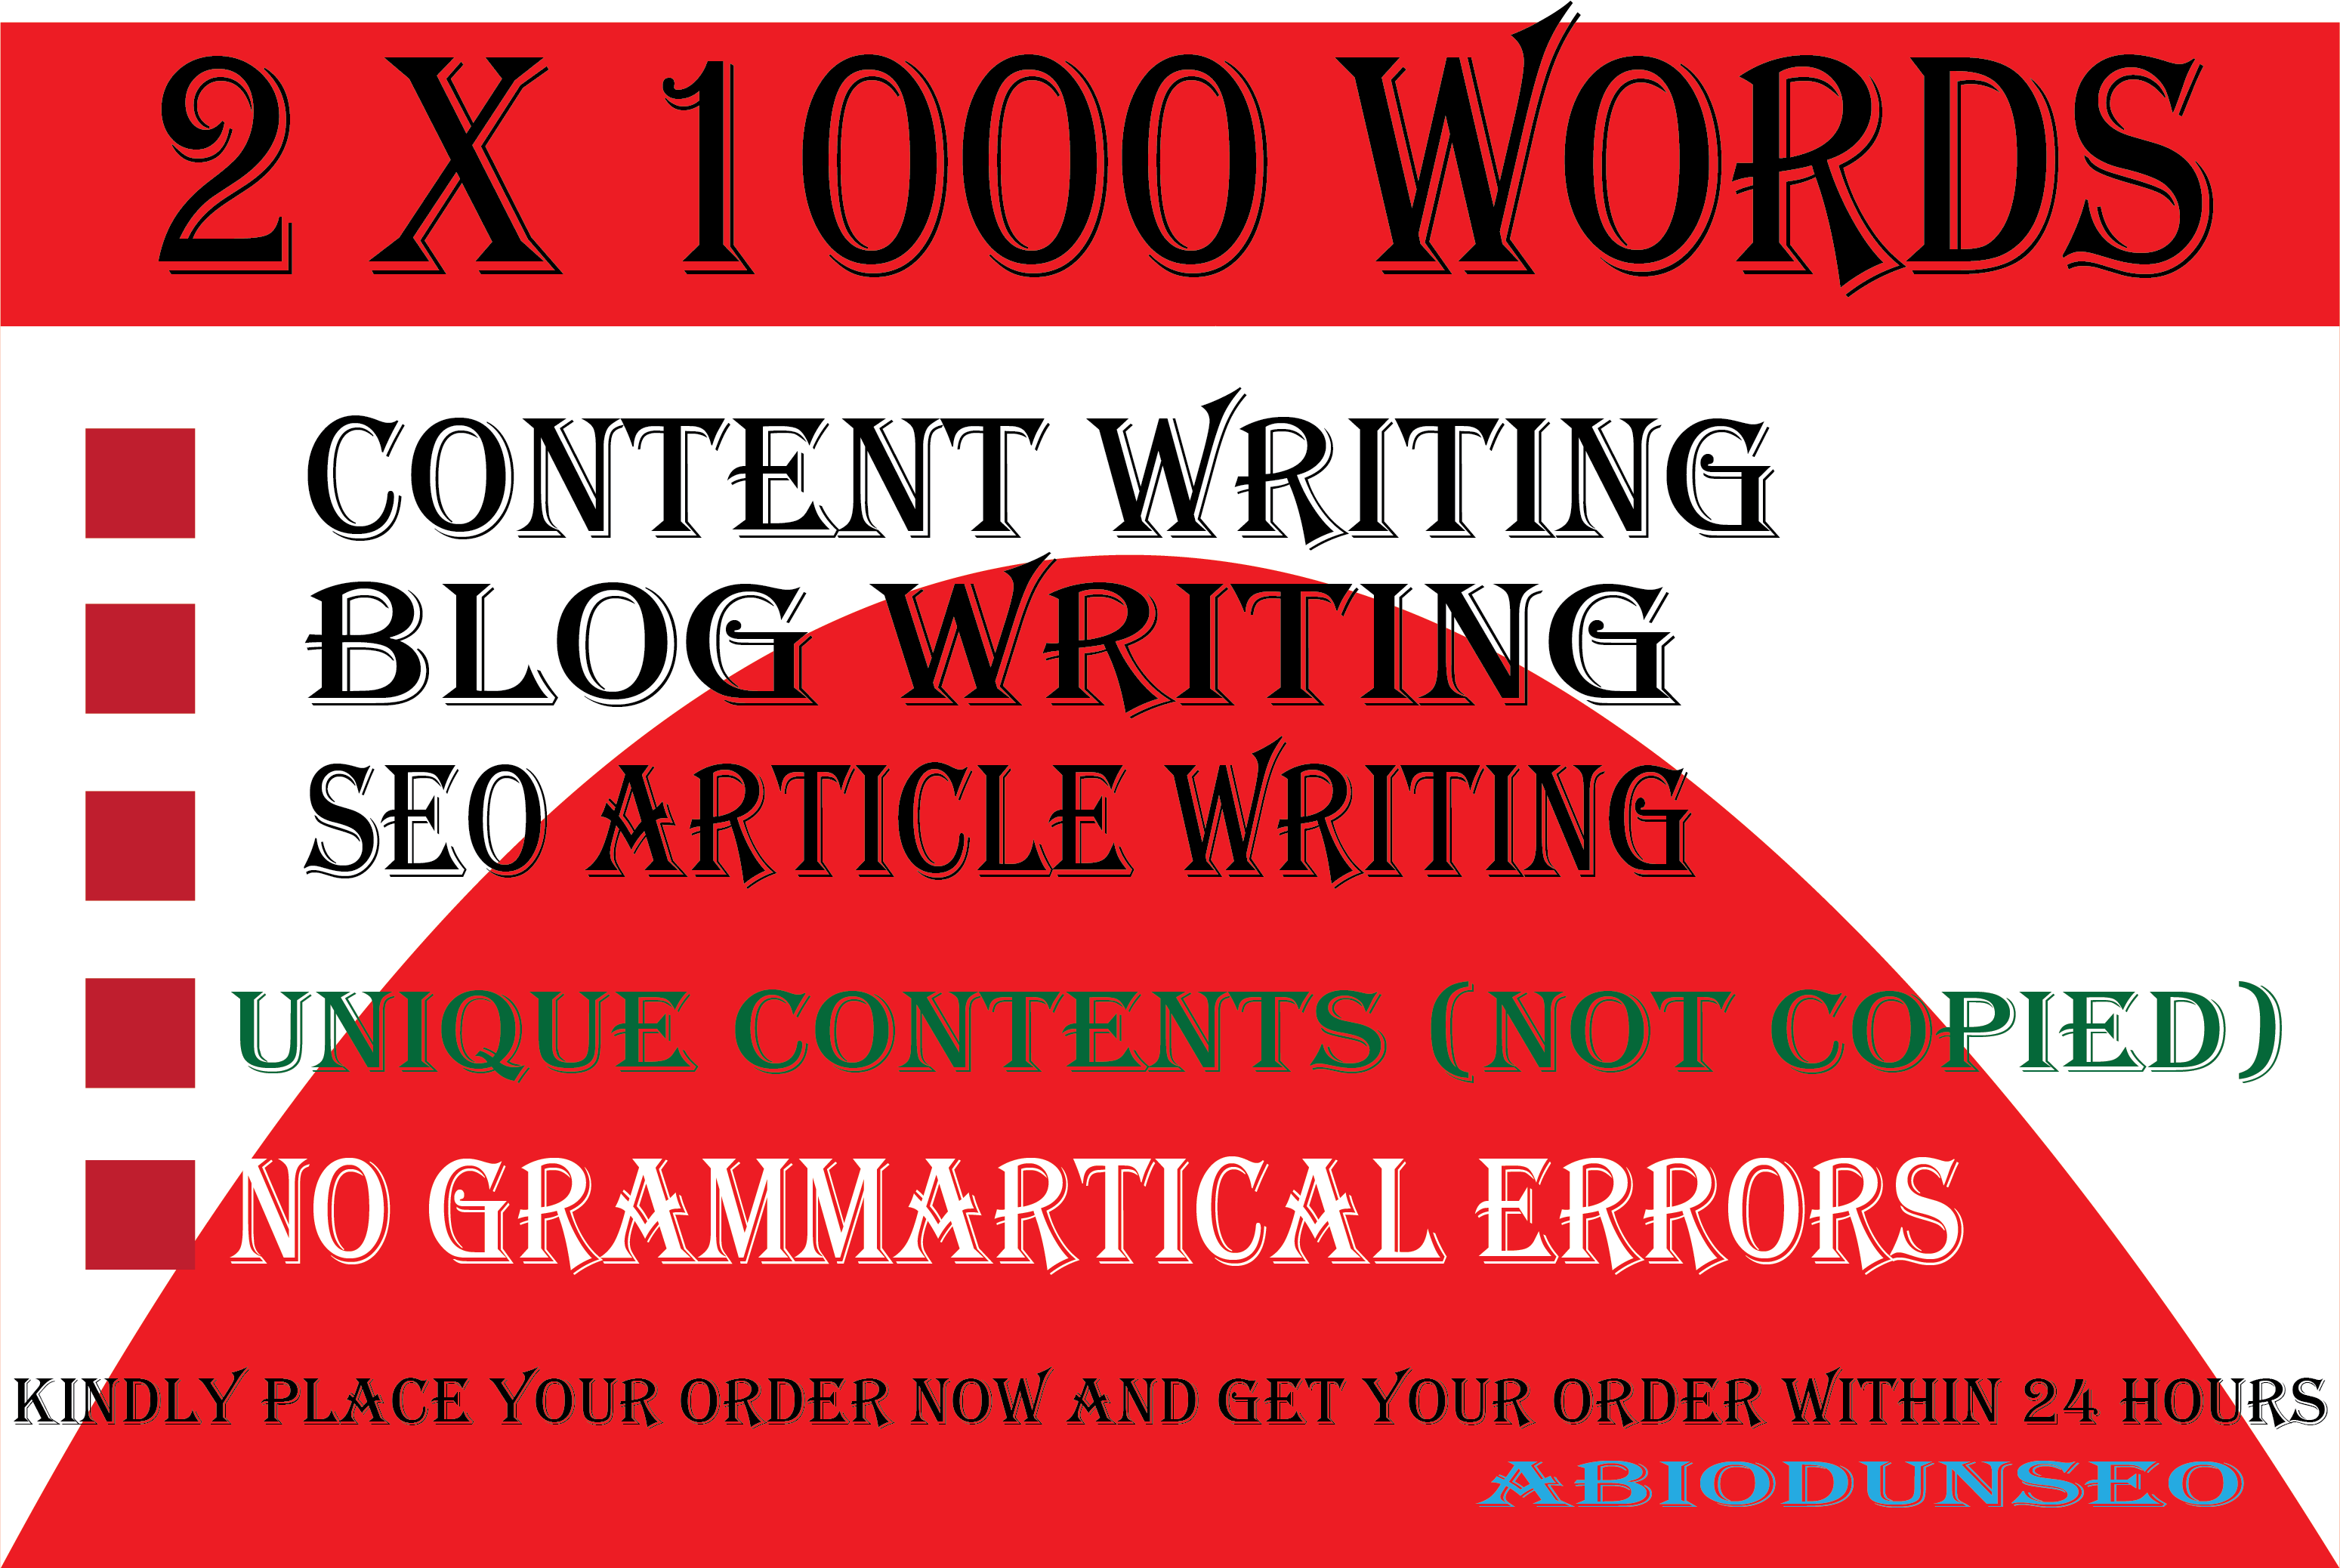 I will write 2 x 1000 words Write amazing article writing SEO friendly and content writing